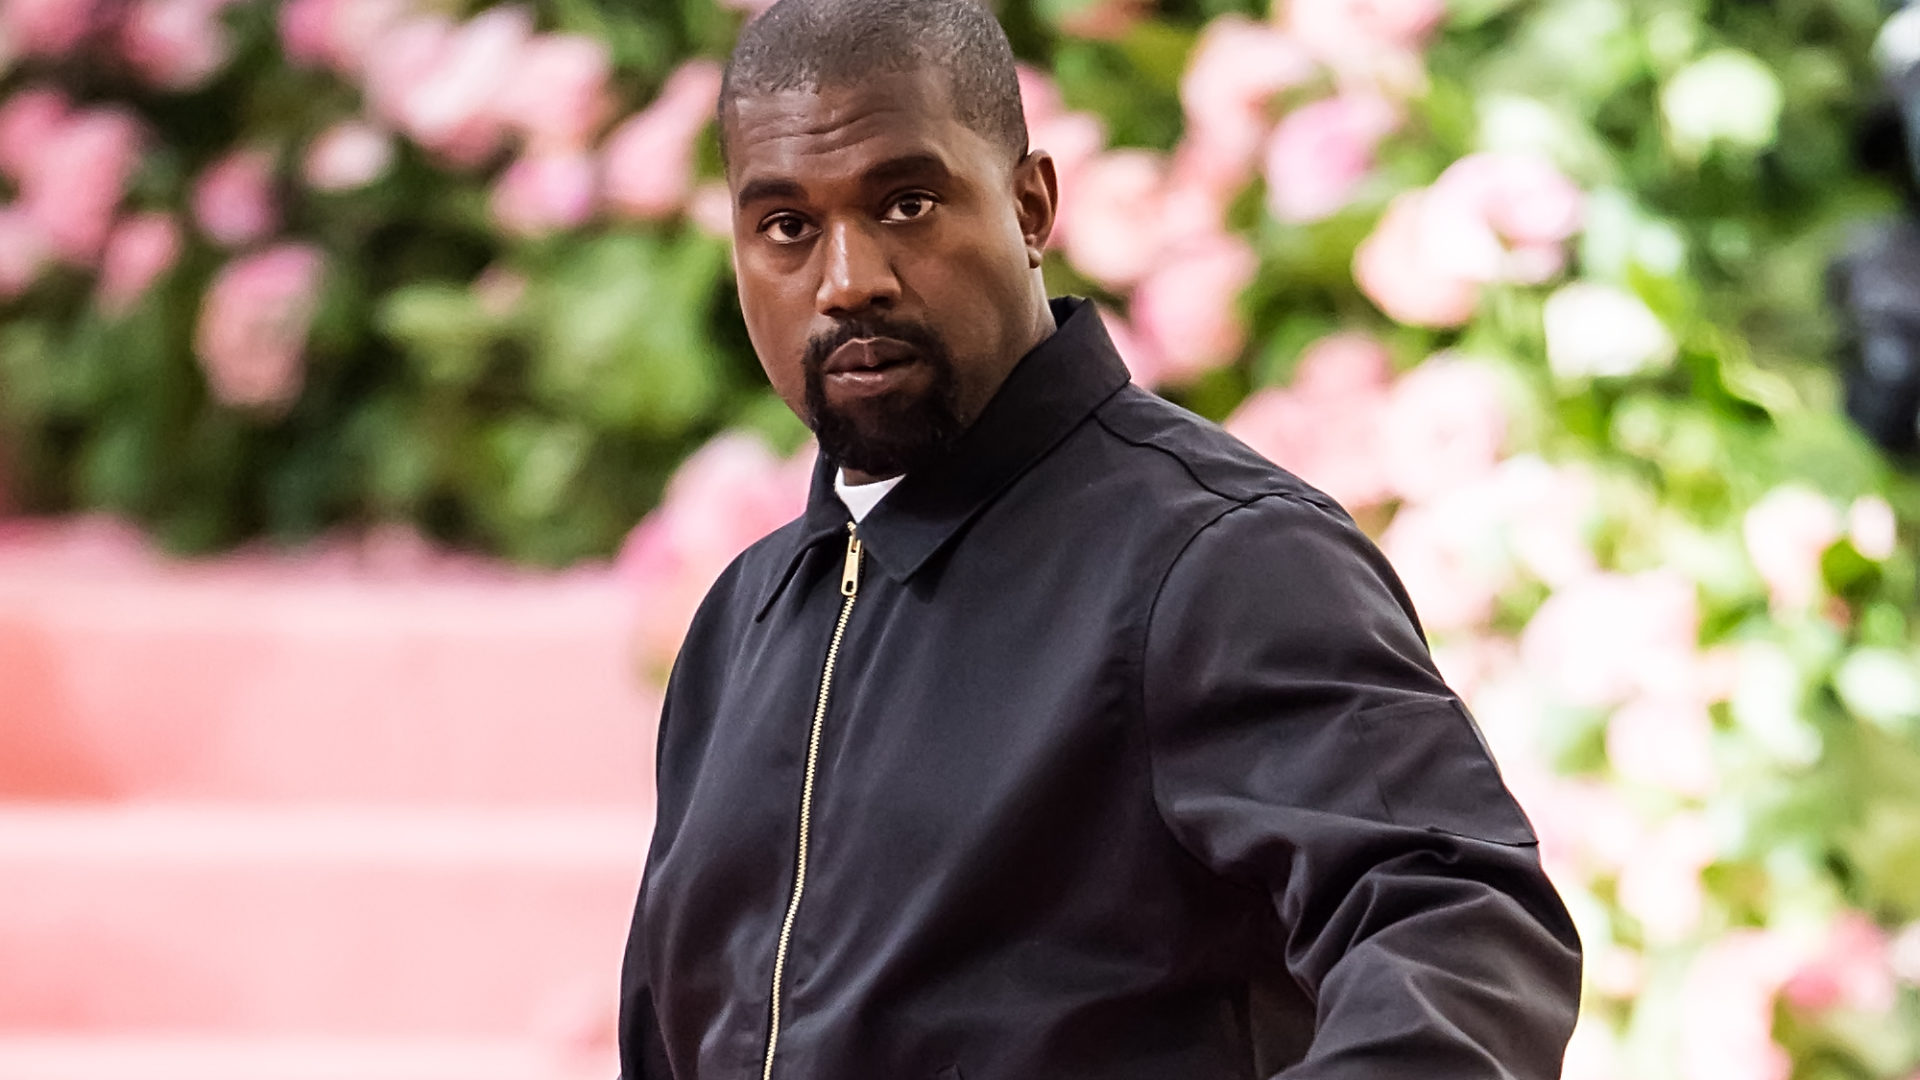 Kanye West Announces New Album 'Jesus Is King' to be out soon